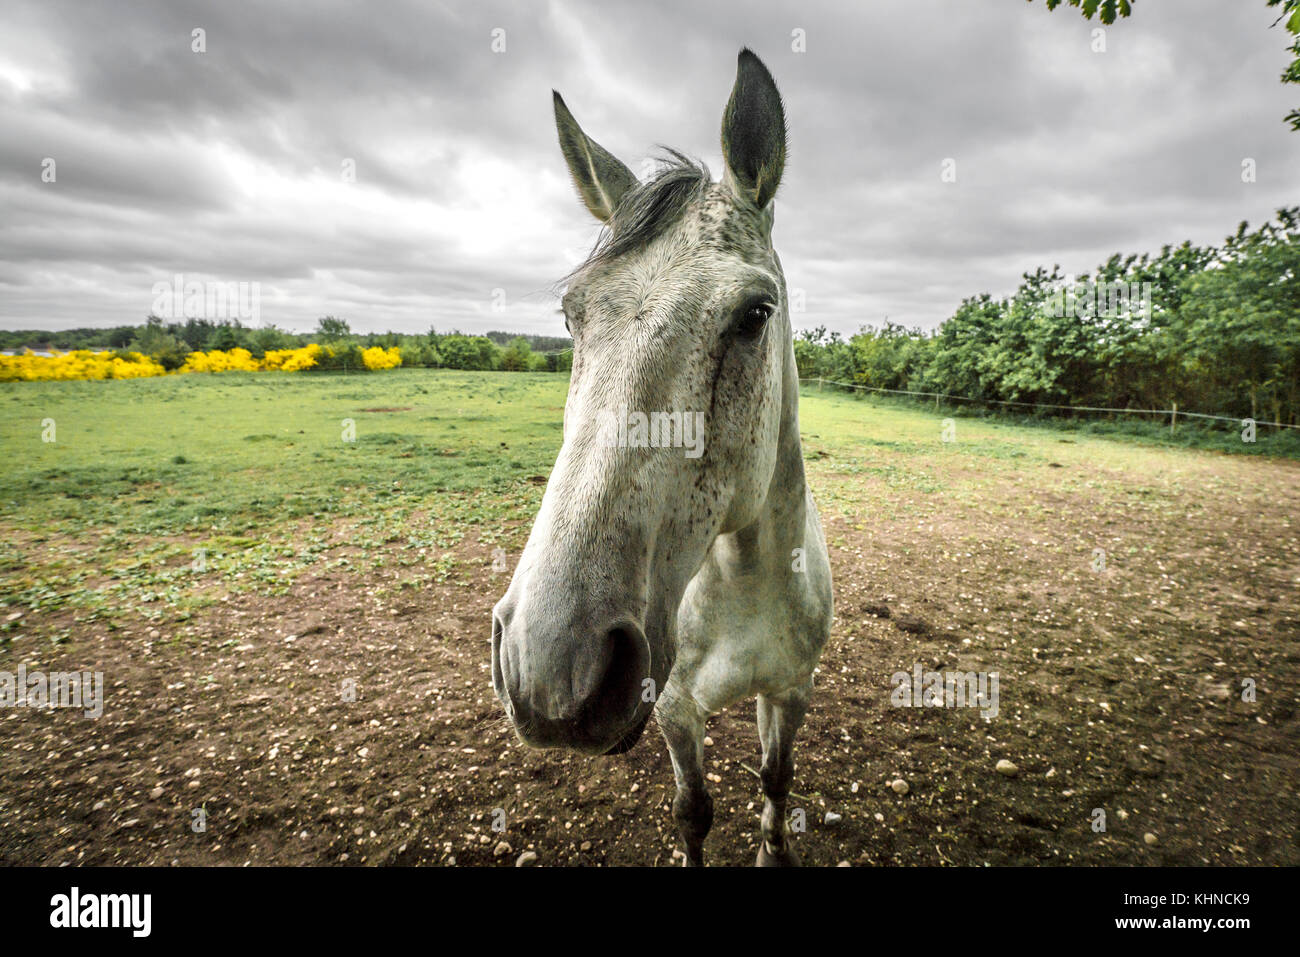 Close-up of a white horse on a rural field in cloudy weather - Stock Image